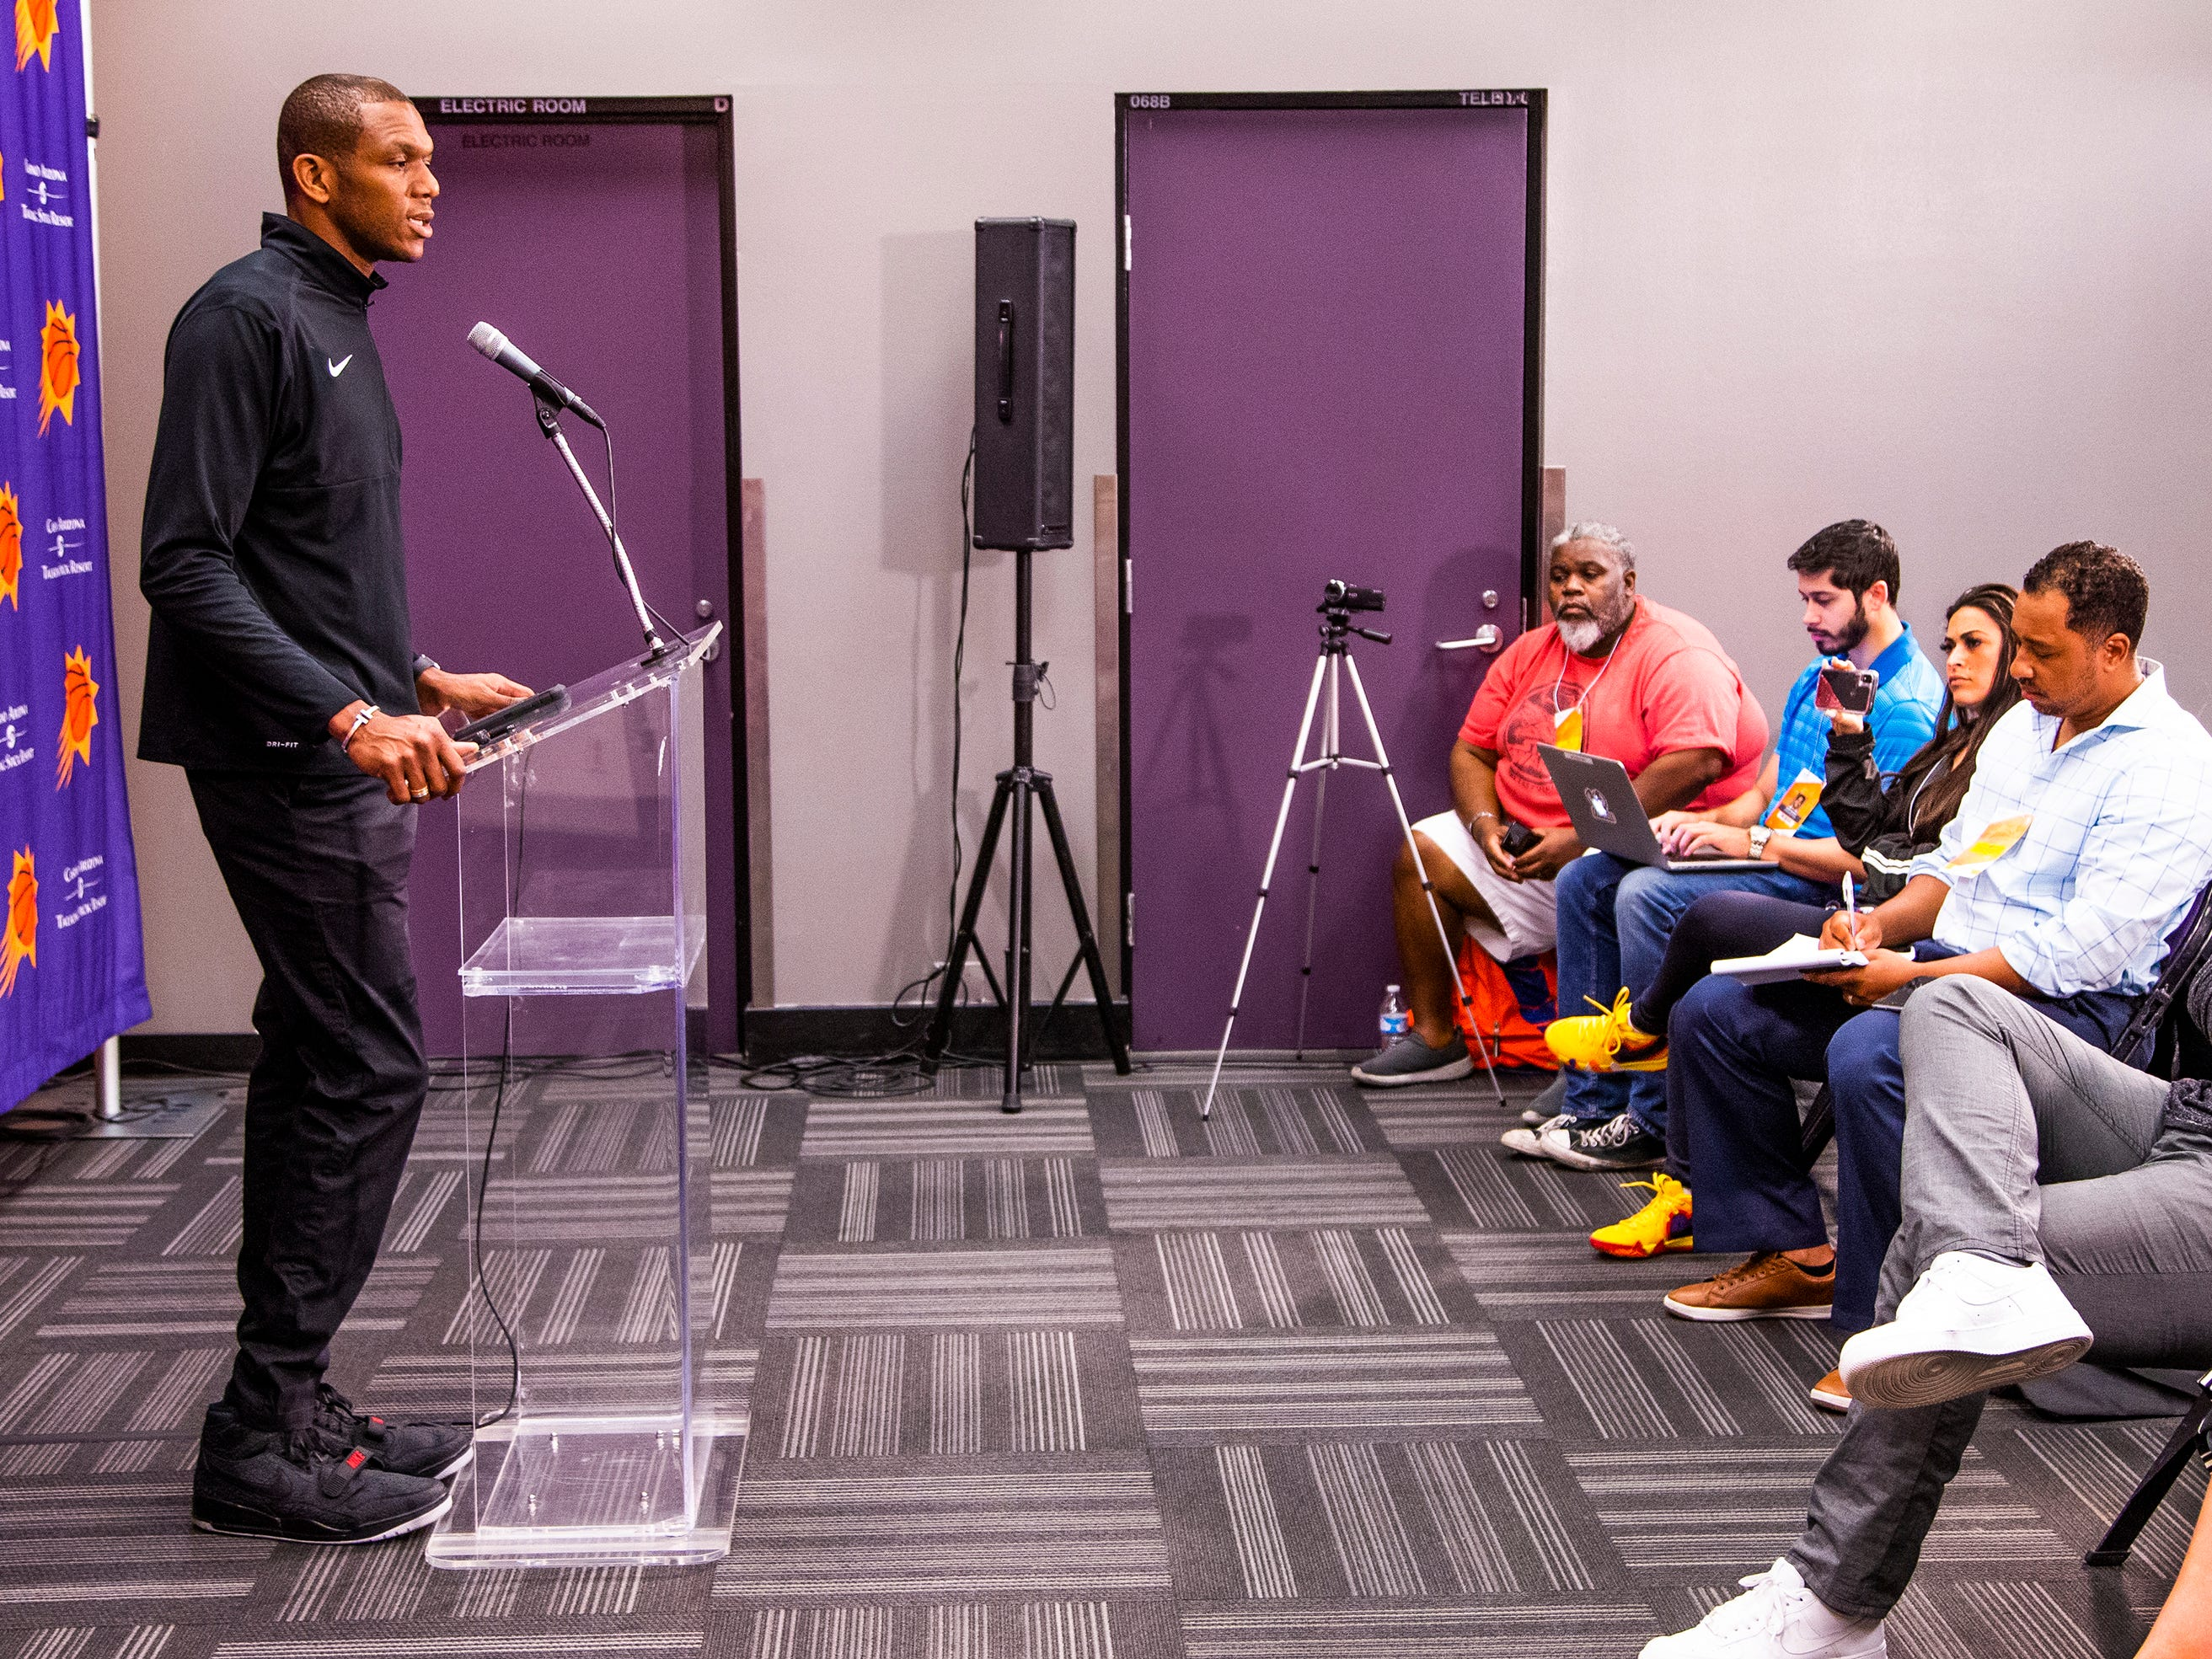 Phoenix Suns General Manager James Jones addresses the media during a press conference at Talking Stick Resort Arena, Wednesday, April, 24, 2019.  Jones answered questions about the search for a new coach for the NBA team.